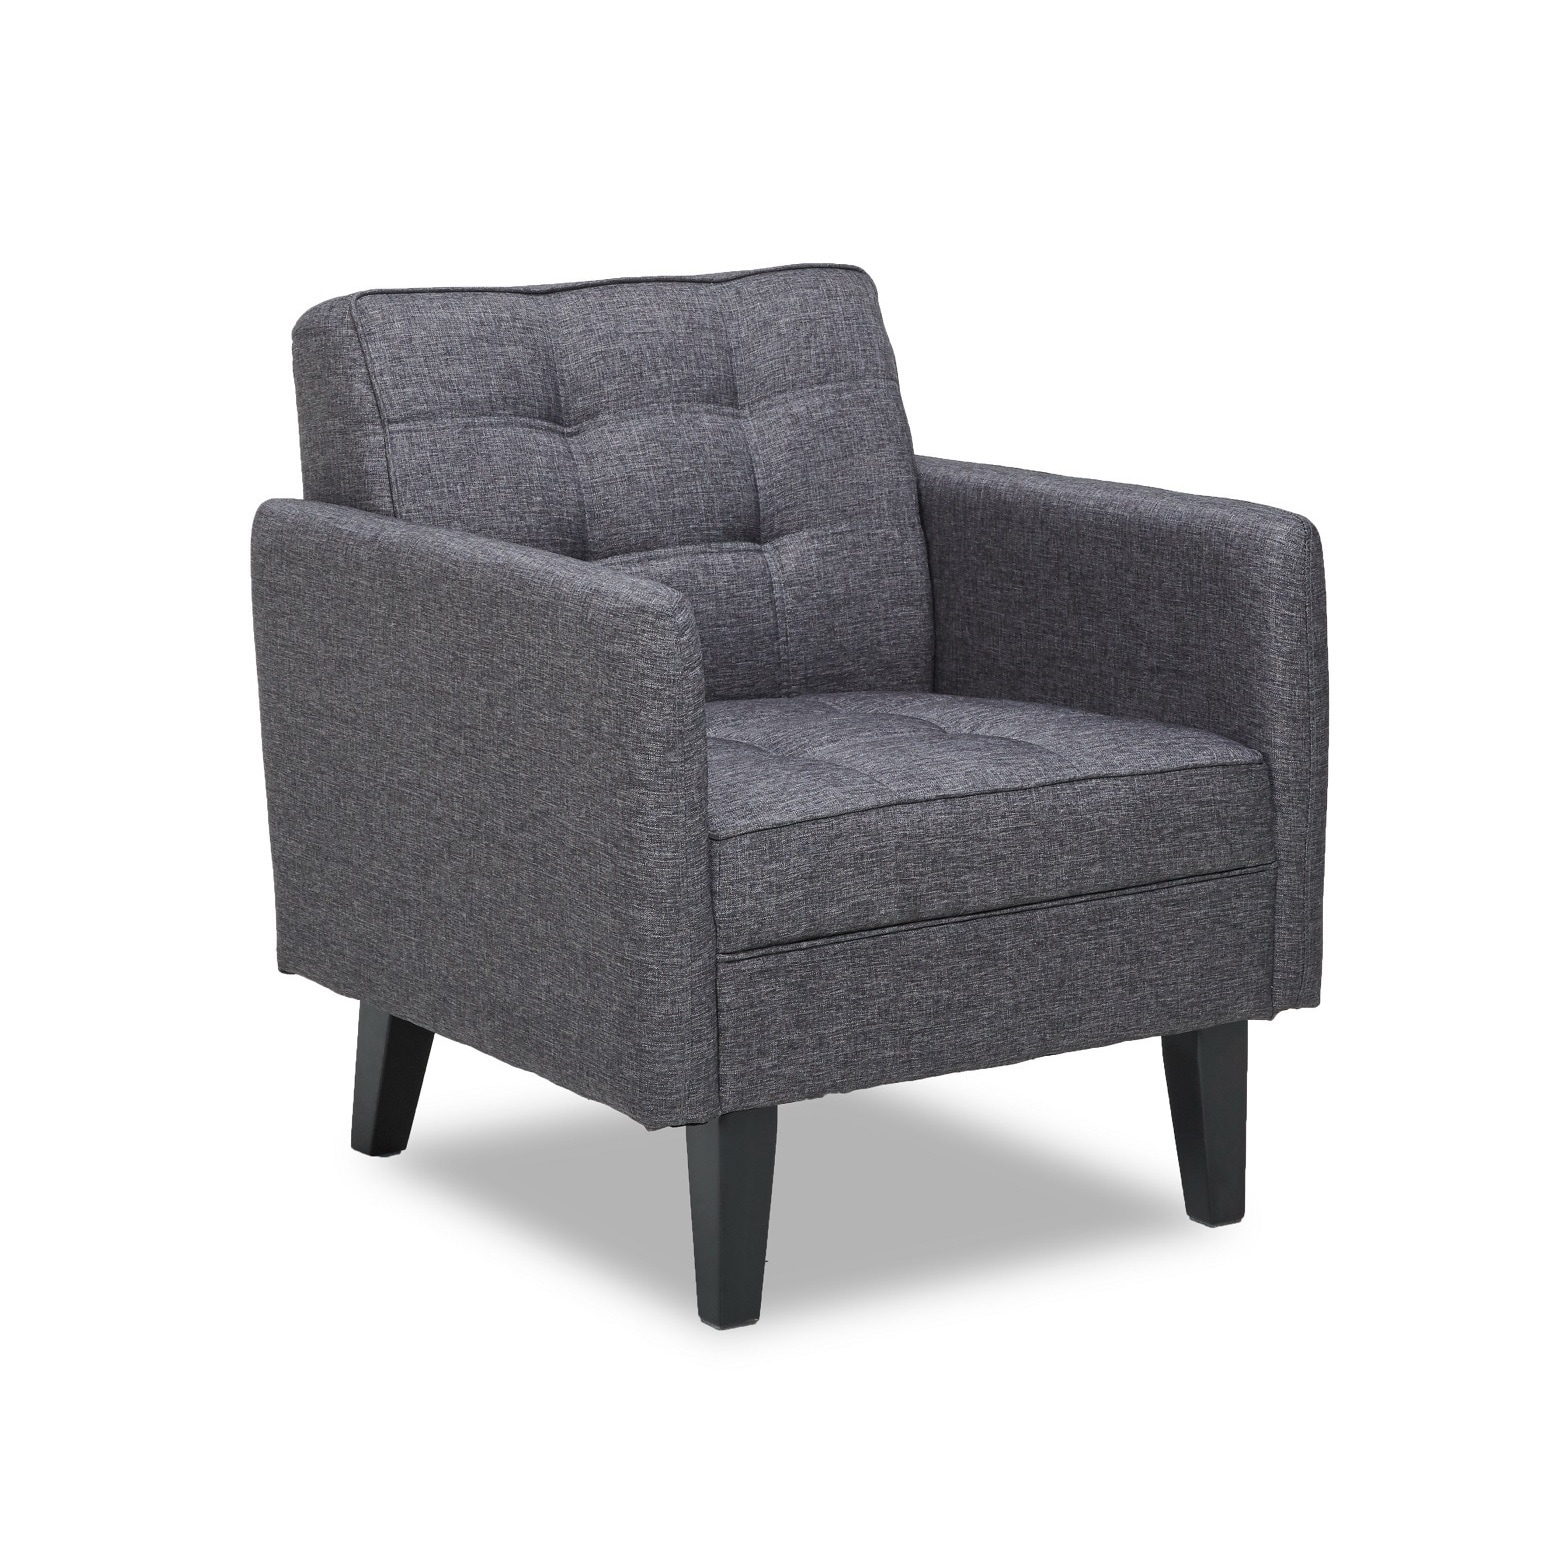 Shop harper modern tufted grey accent chair free shipping today overstock com 12327962